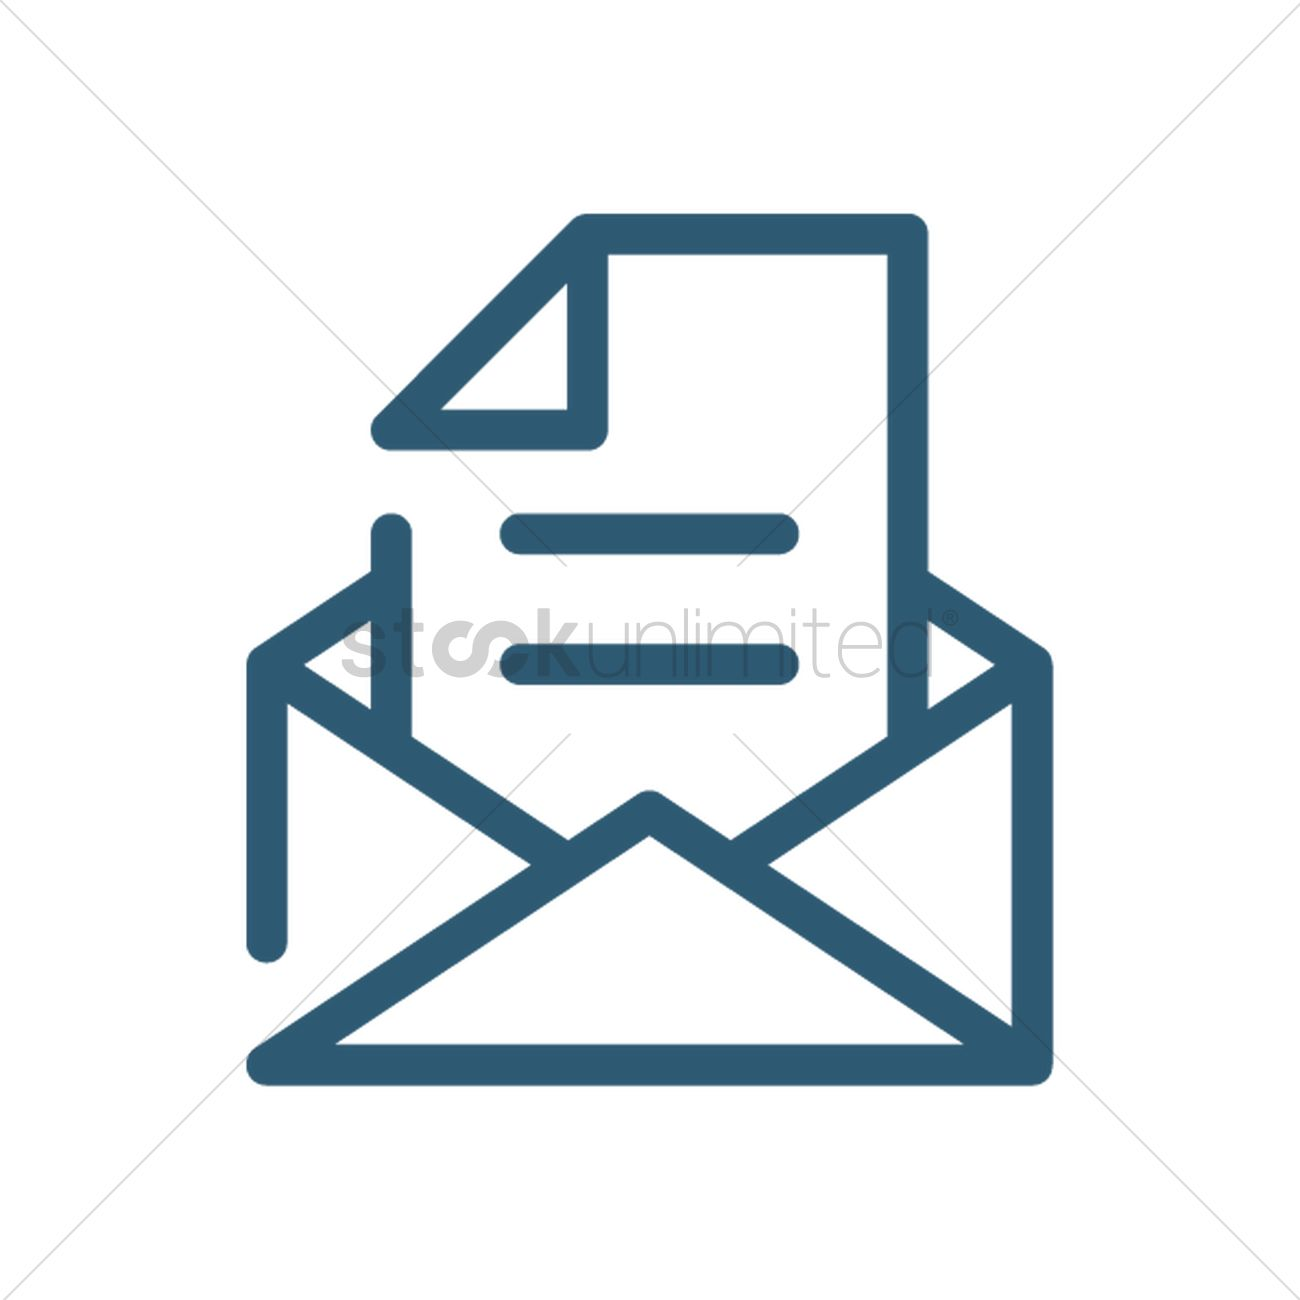 1300x1300 Email Symbol Vector Image